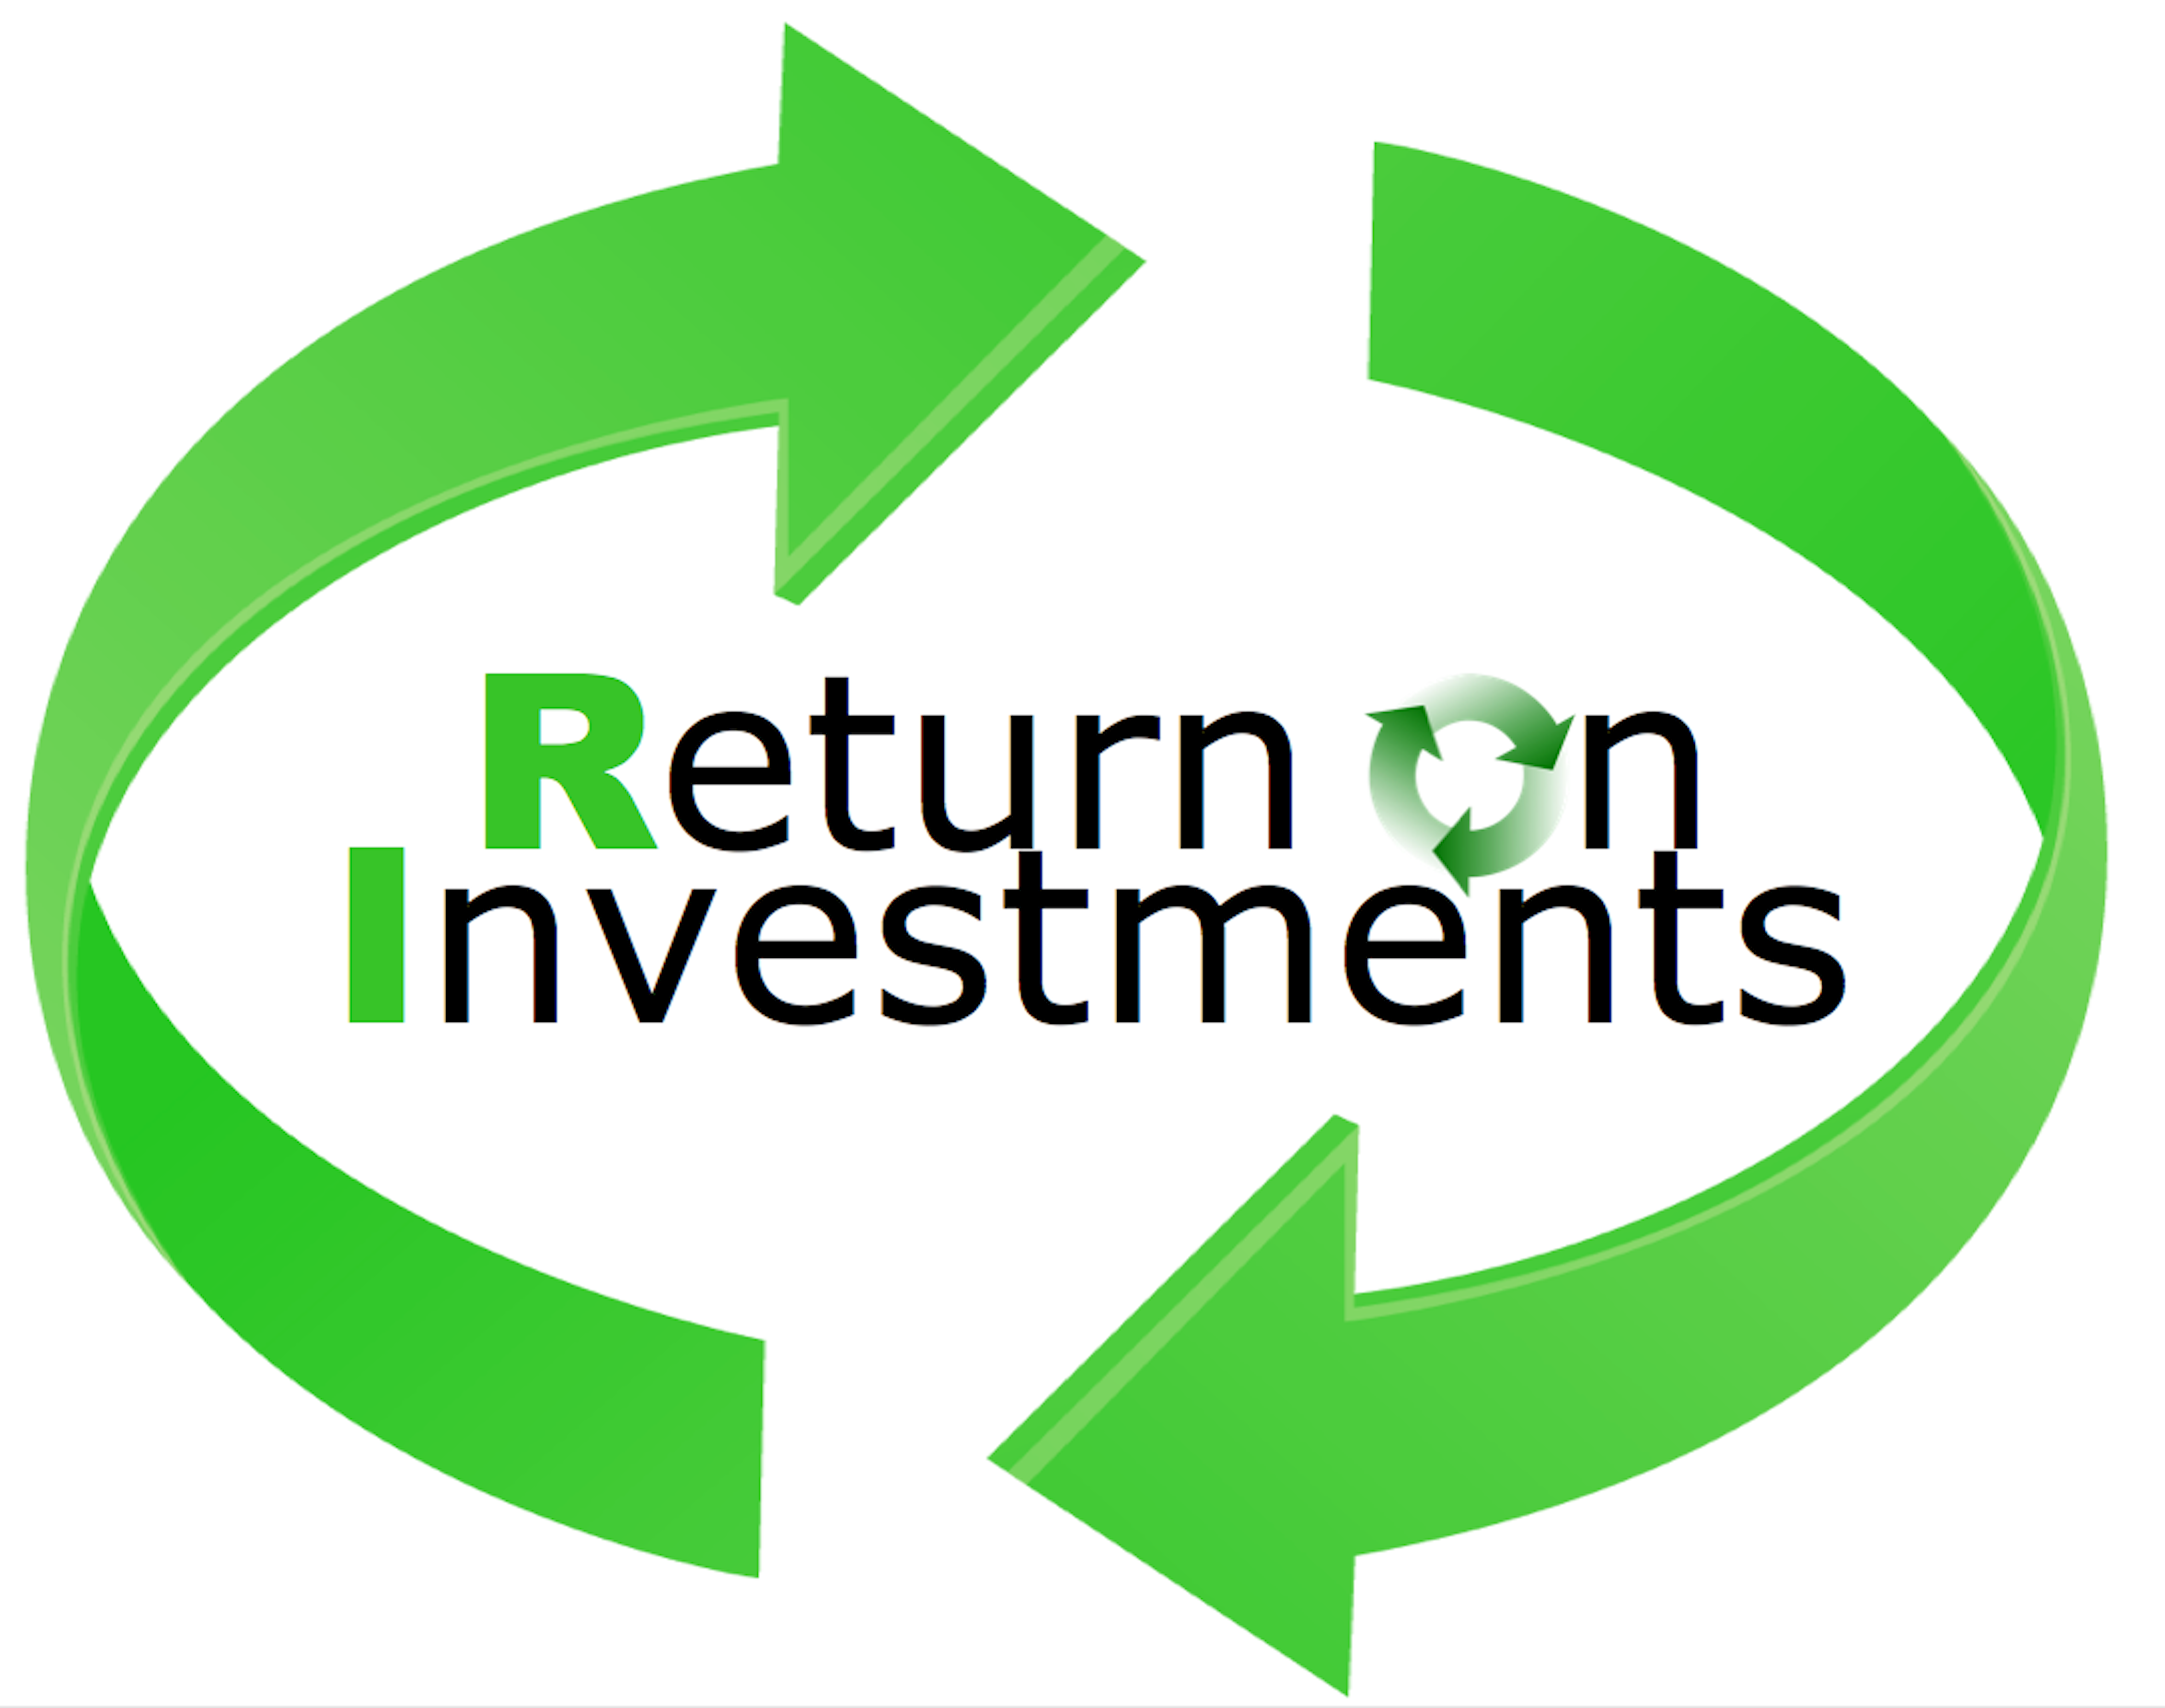 Return on Investments LLC logo